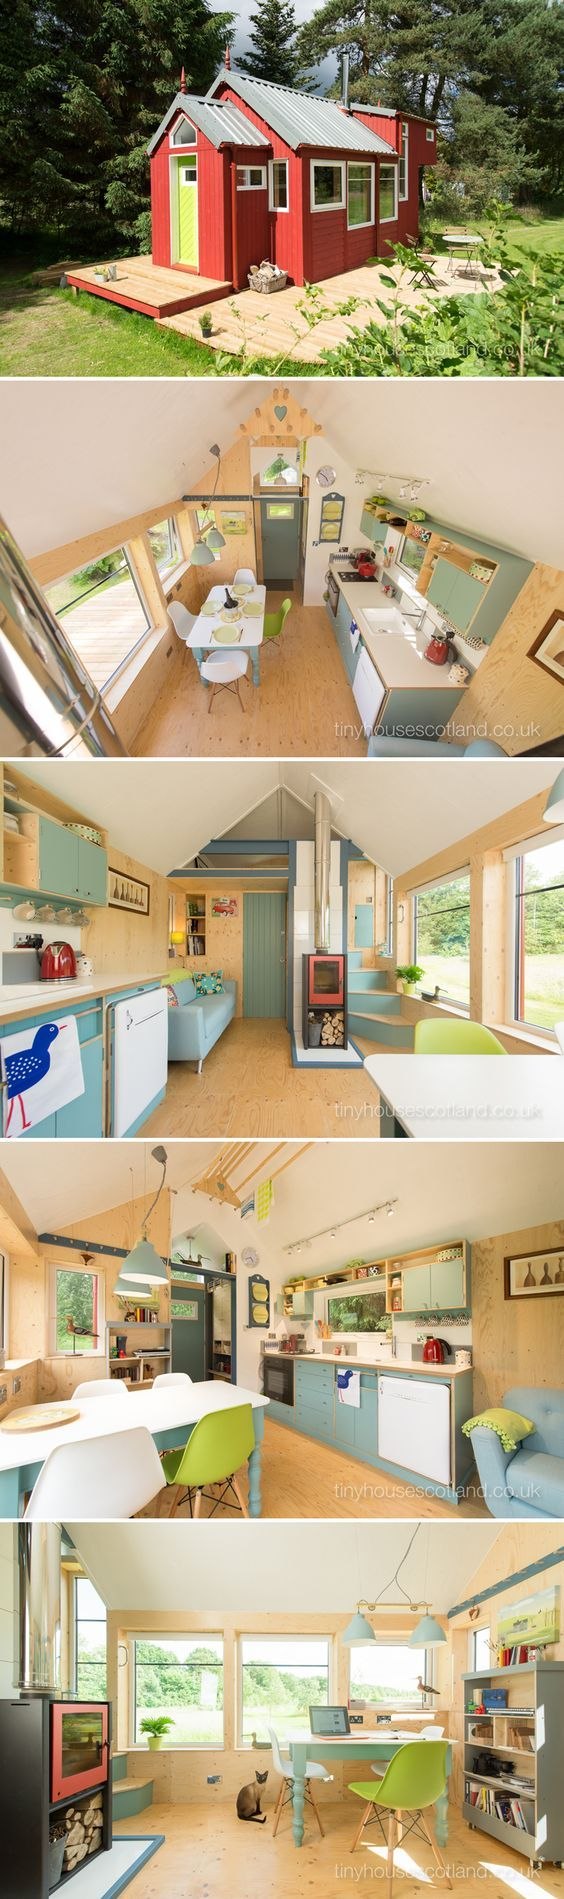 Jonathan Avery of Tiny House Scotland designed and developed the NestHouse, an energy efficient moveable modular eco-house built using green principles.